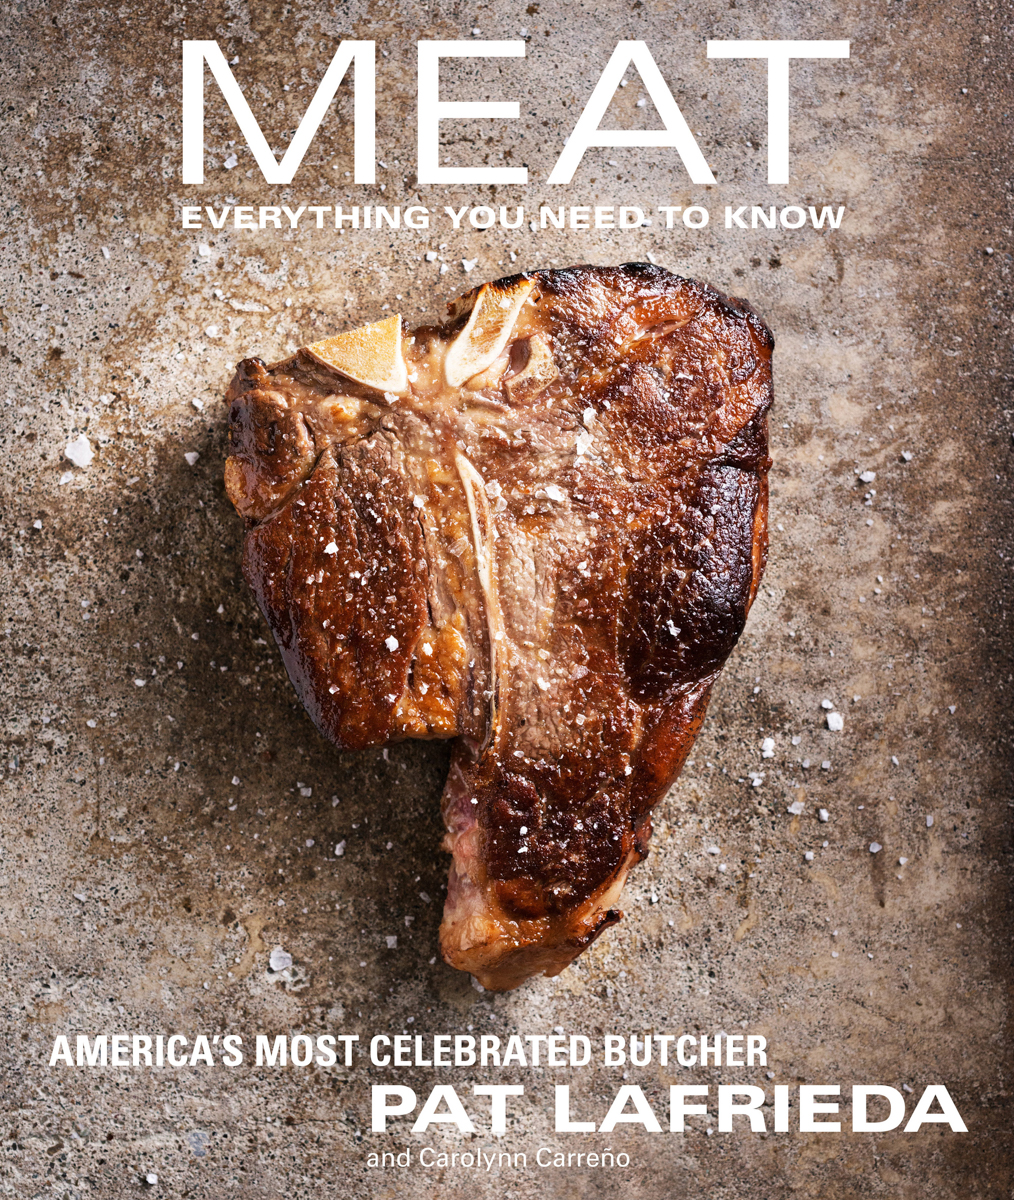 MEATfrontcover.jpg